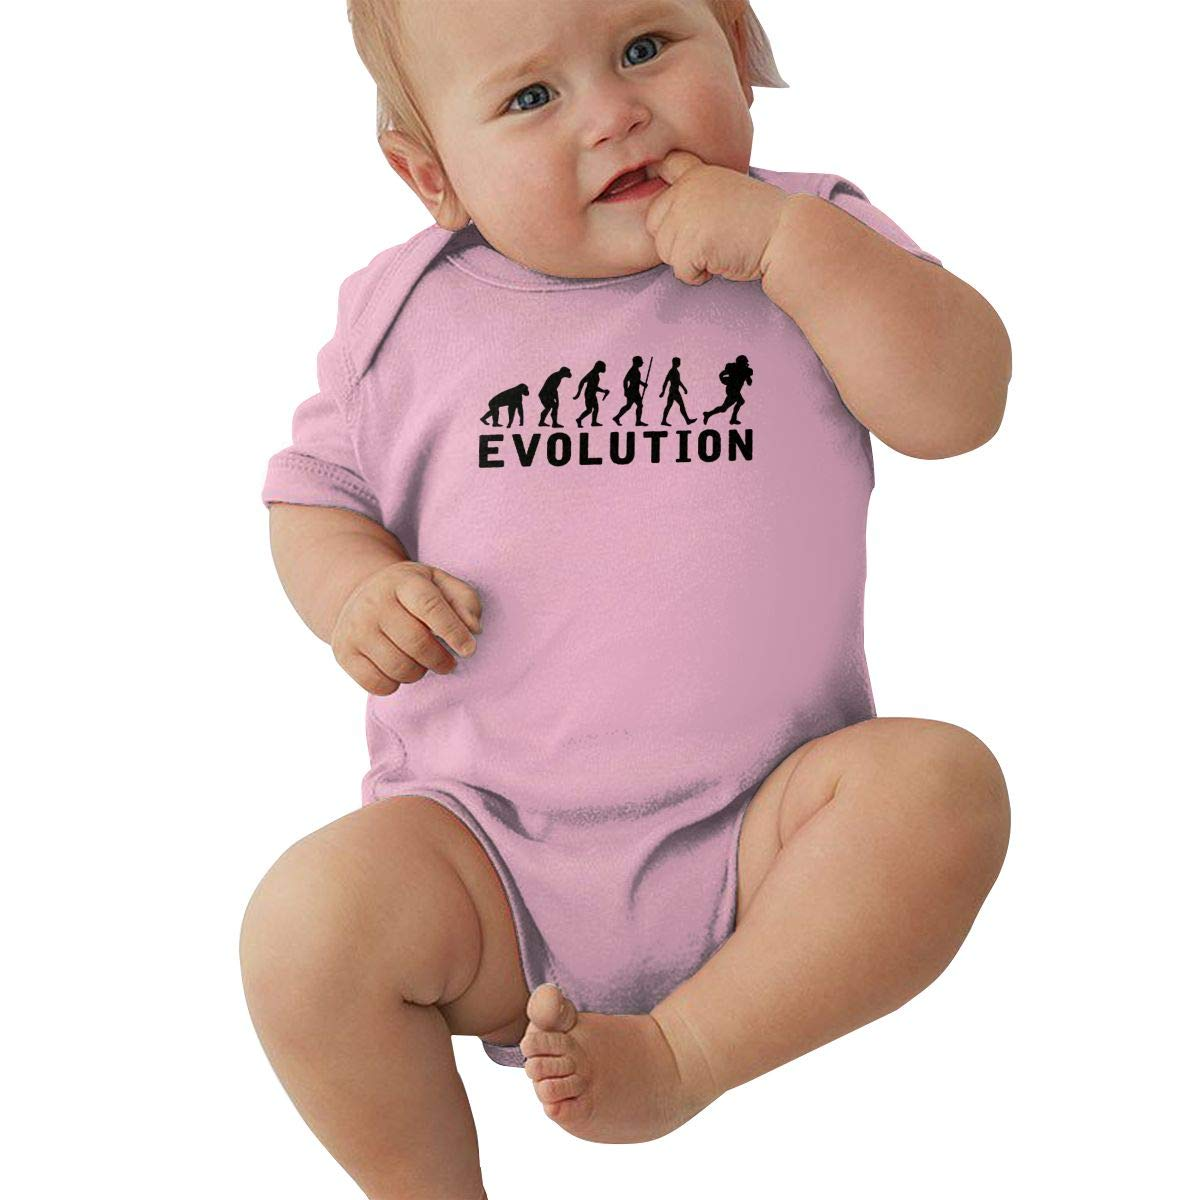 American Football Evolution Toddler Baby Girl Boy Romper Jumpsuit Short Sleeve Bodysuit Tops Clothes